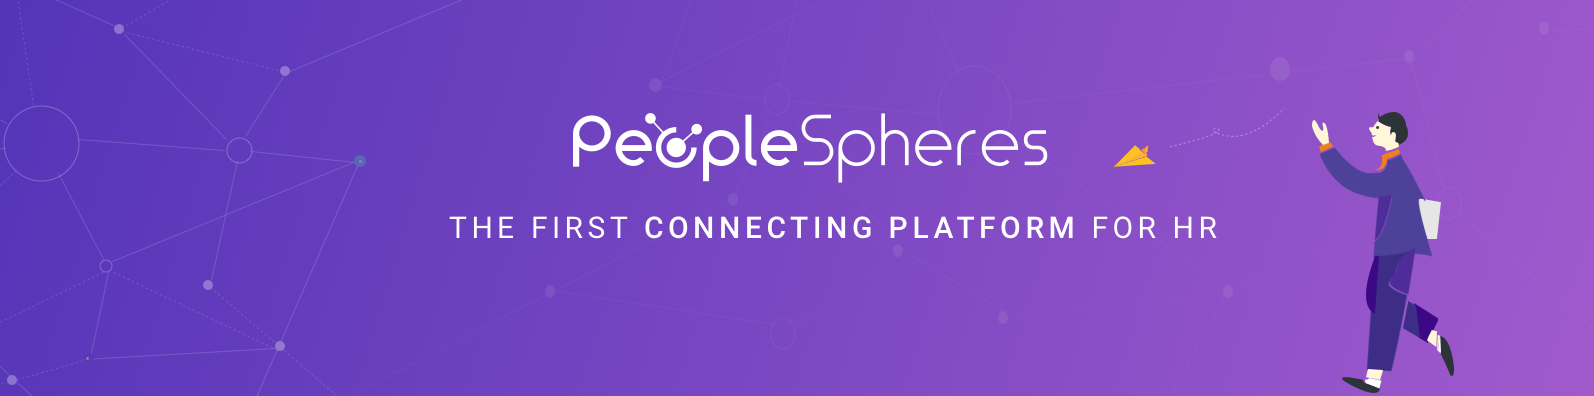 Review PeopleSpheres: Connect your HR software and automate your processes - Appvizer